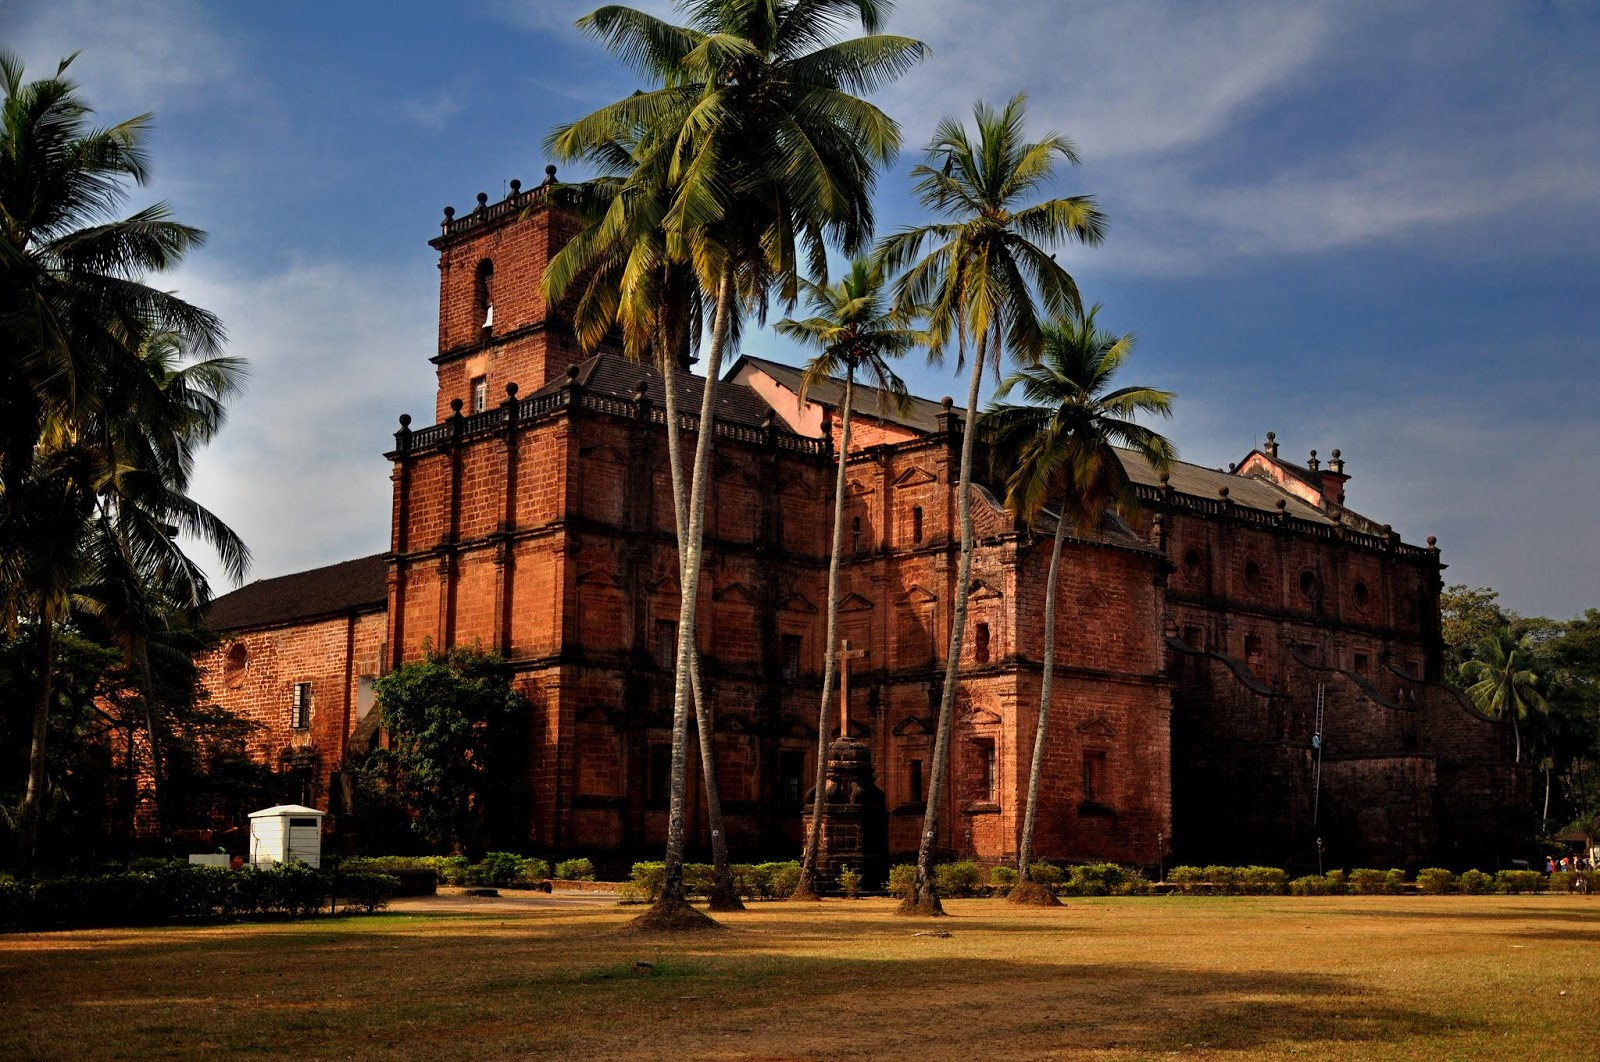 The Basilica of Bom Jesus in Goa not limited to Any Religion 1